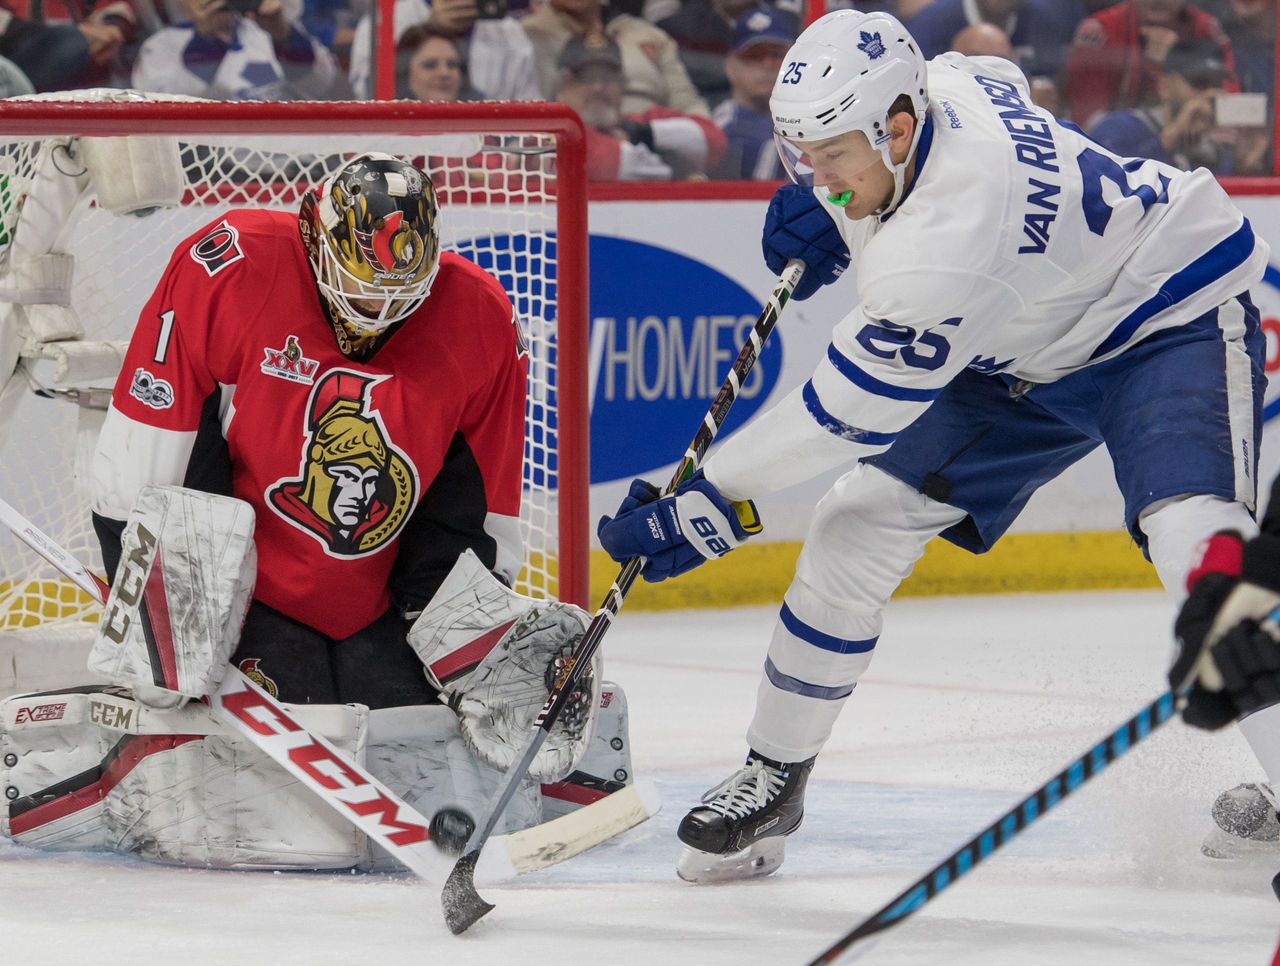 Cropped 2017 01 15t010109z 720515865 nocid rtrmadp 3 nhl toronto maple leafs at ottawa senators